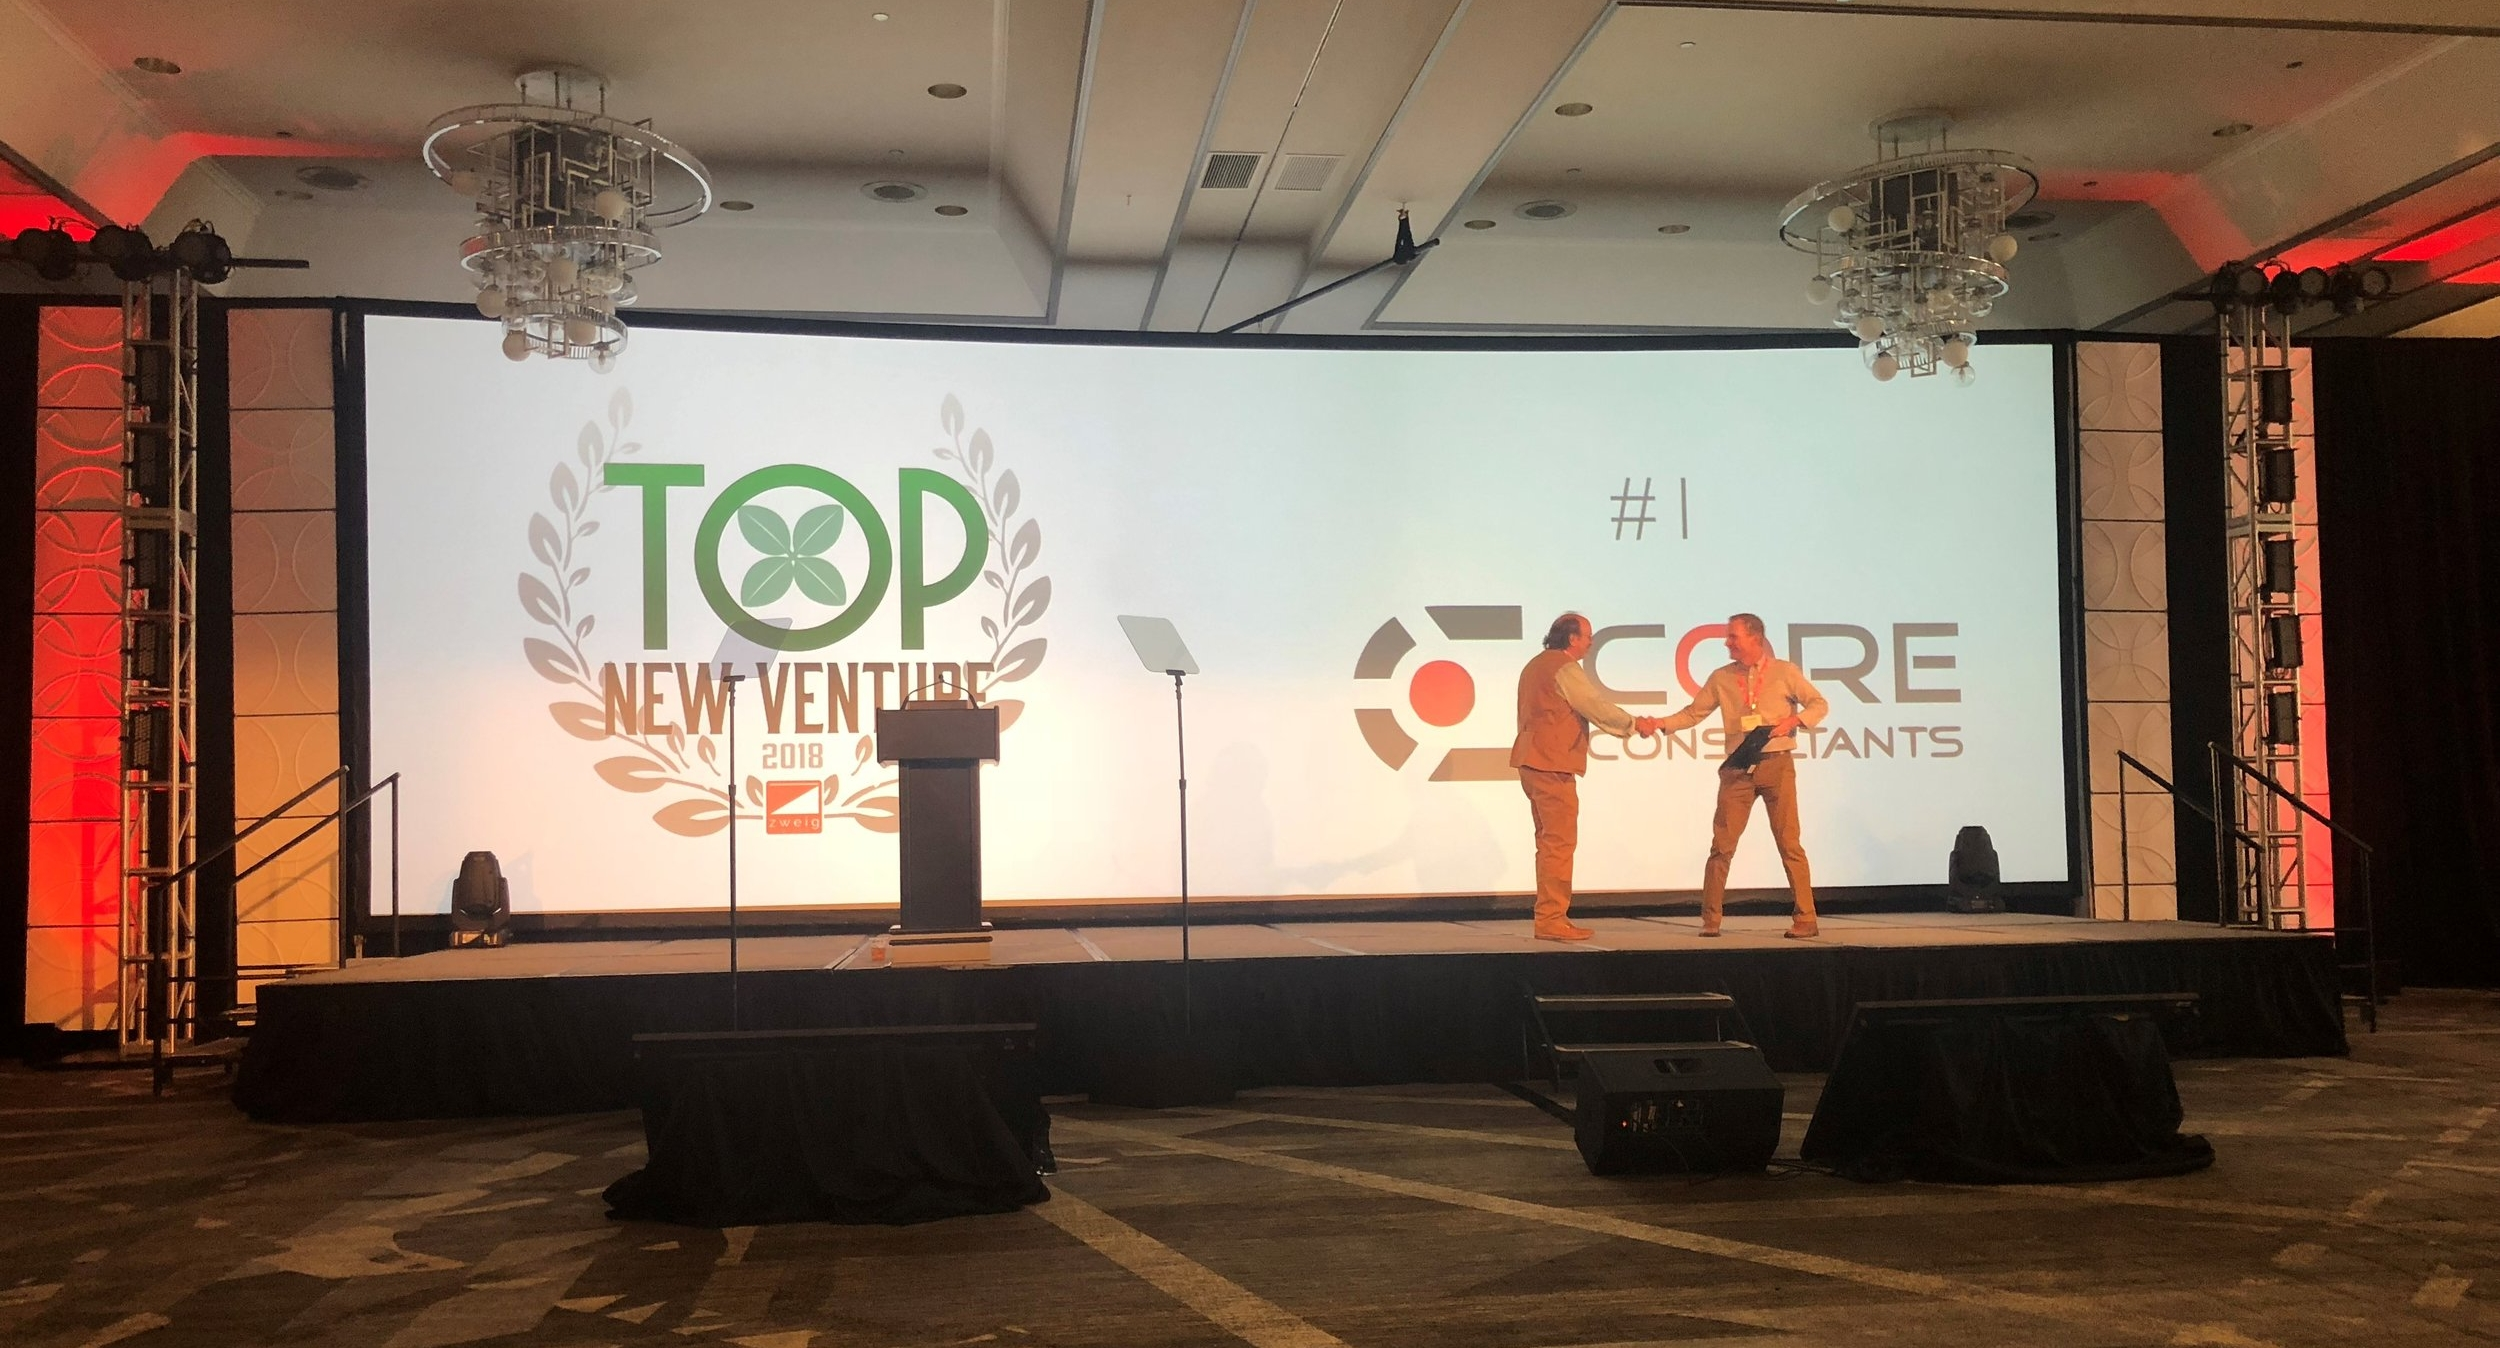 Blake Calvert (right), CORE President & CEO accepting Zweig Group's Top New Venture Award from Mark Zweig (left) at the Hot Firm Conference in Dallas, TX.